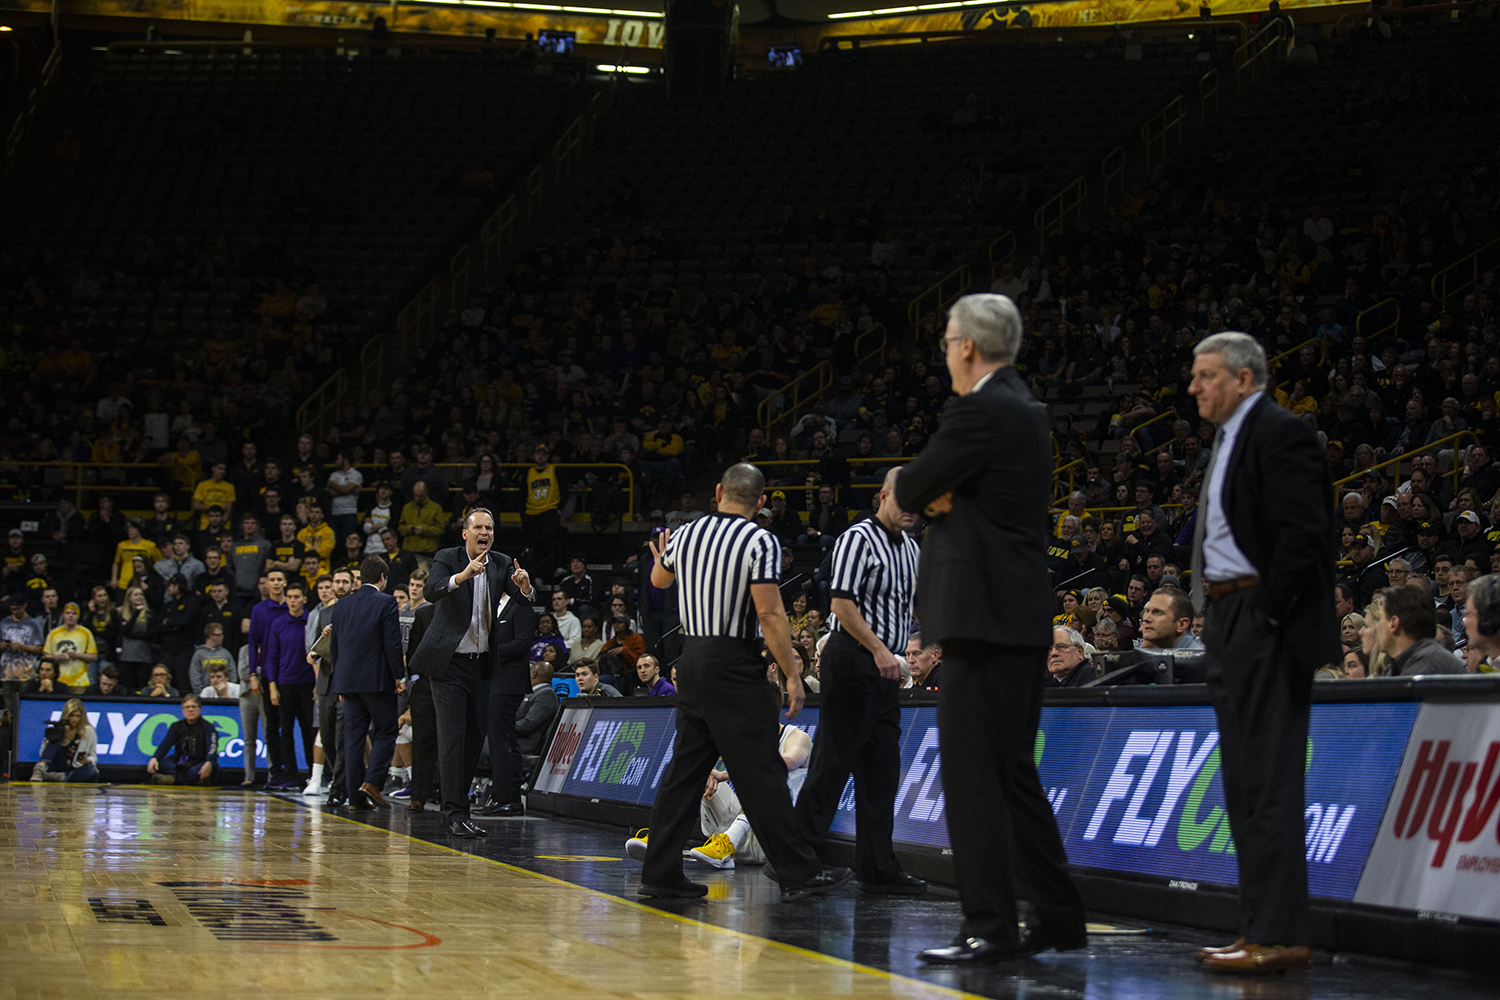 Northwestern+head+coach+Chris+Collins+%28left%29+speaks+to+referees++during+the+Iowa%2FNorthwestern+men%27s+basketball+game+at+Carver-Hawkeye+Arena+on+Sunday%2C+February+10%2C+2019.+The+Hawkeyes+defeated+the+Wildcats%2C+80-79.+